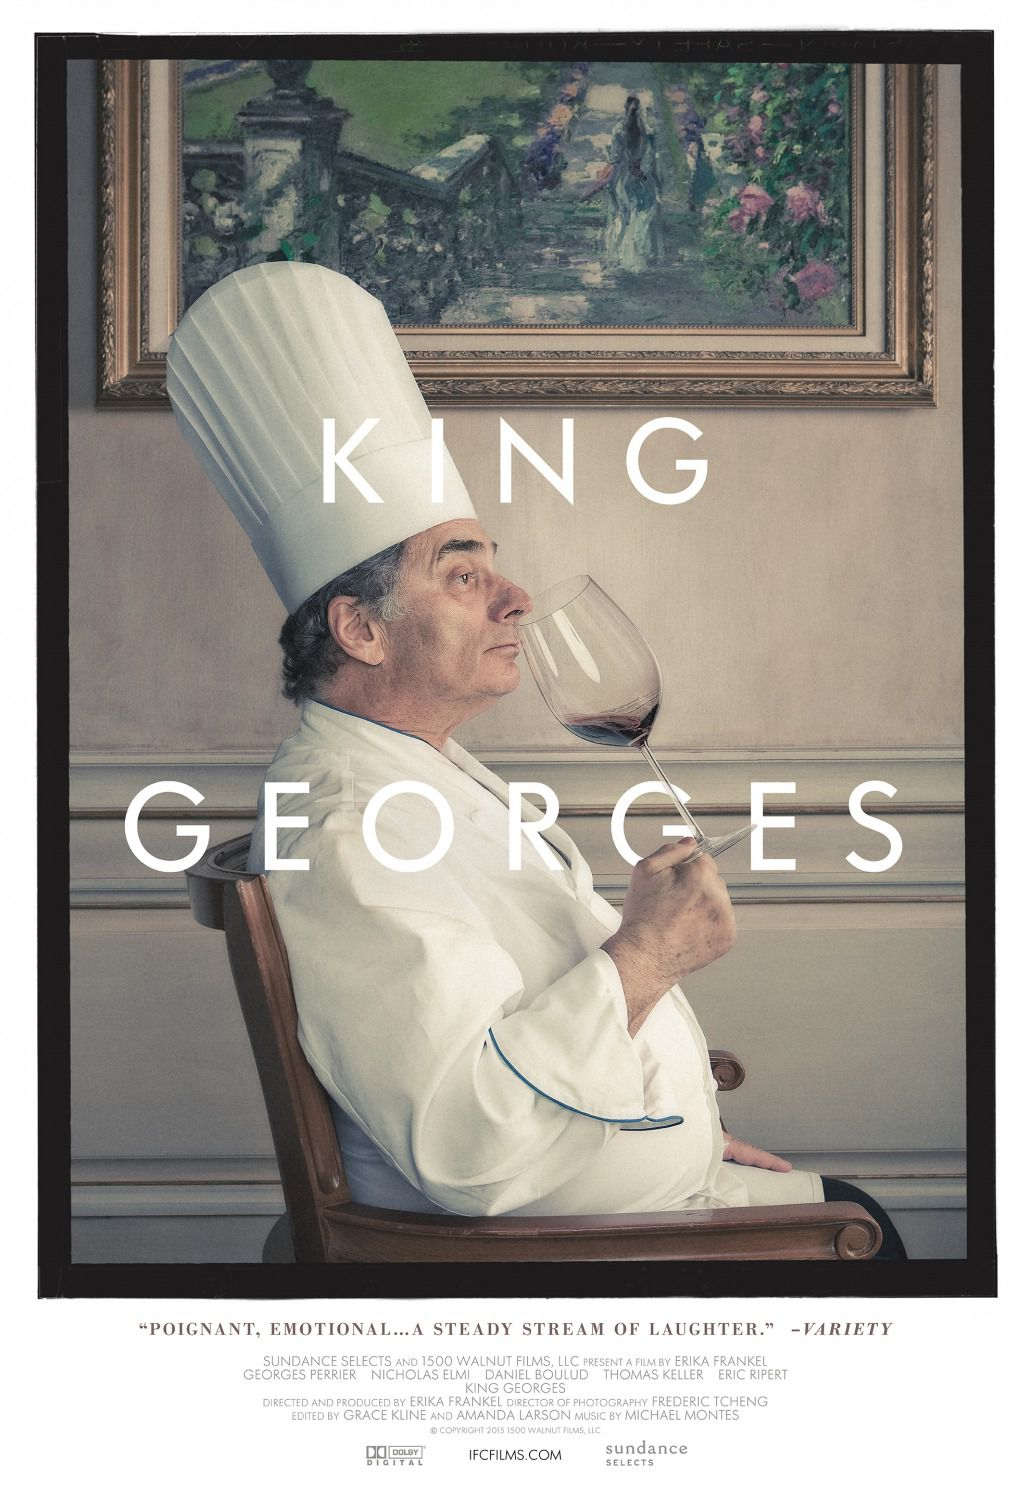 King George - cook film poster - Poignant, emotionsl, a steady stream of laughter - George Perrier - Nicholas Elmi - Daniel Boulud - Thomas Keller - Eric Ripert